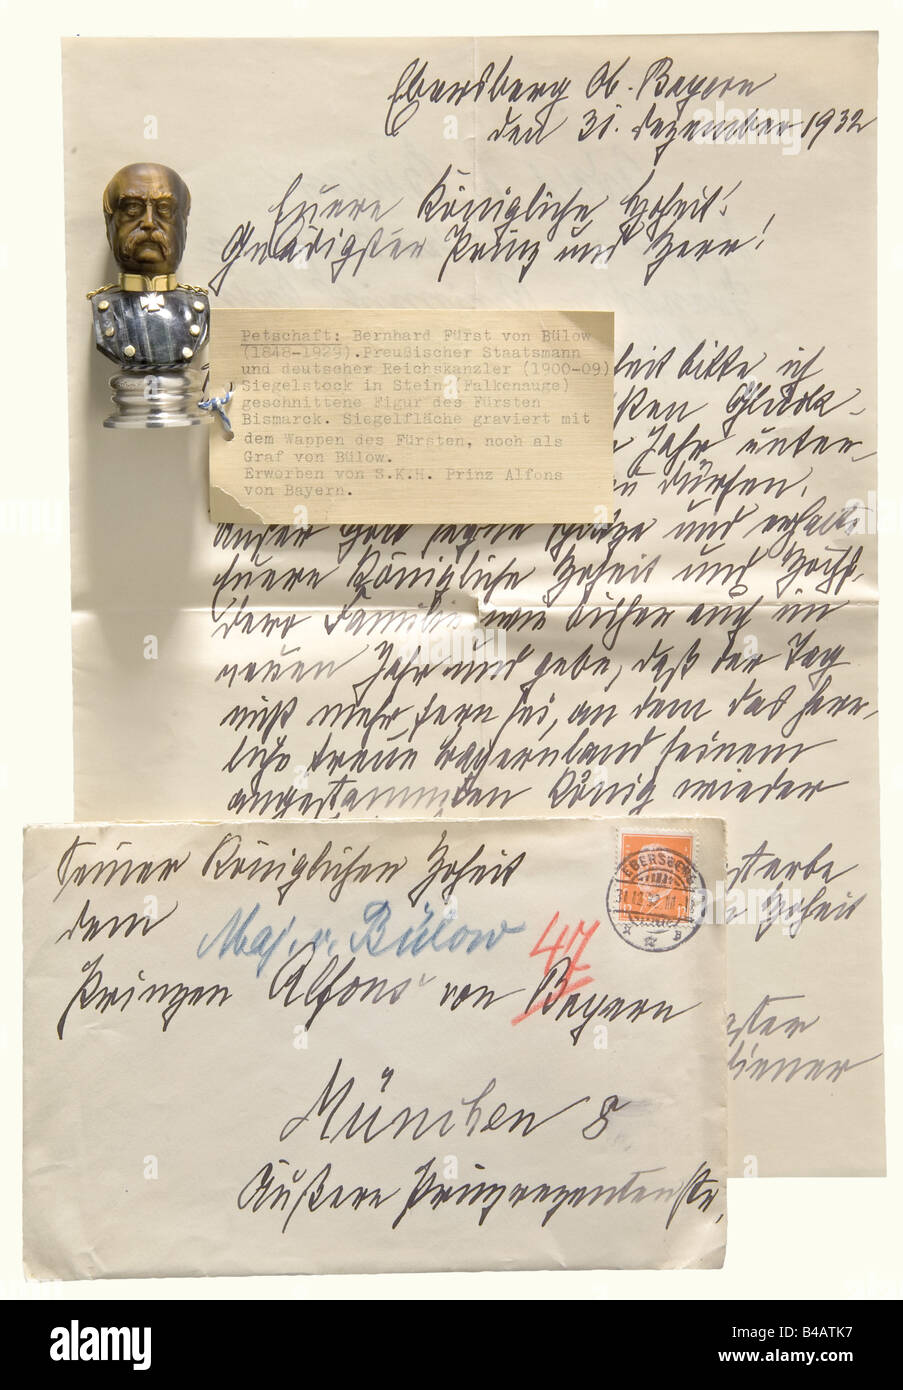 Bernhard, Prince von Bülow (1849 - 1929) - a personal seal for the Imperial Chancellor and Prussian Prime Minister - Stock Image